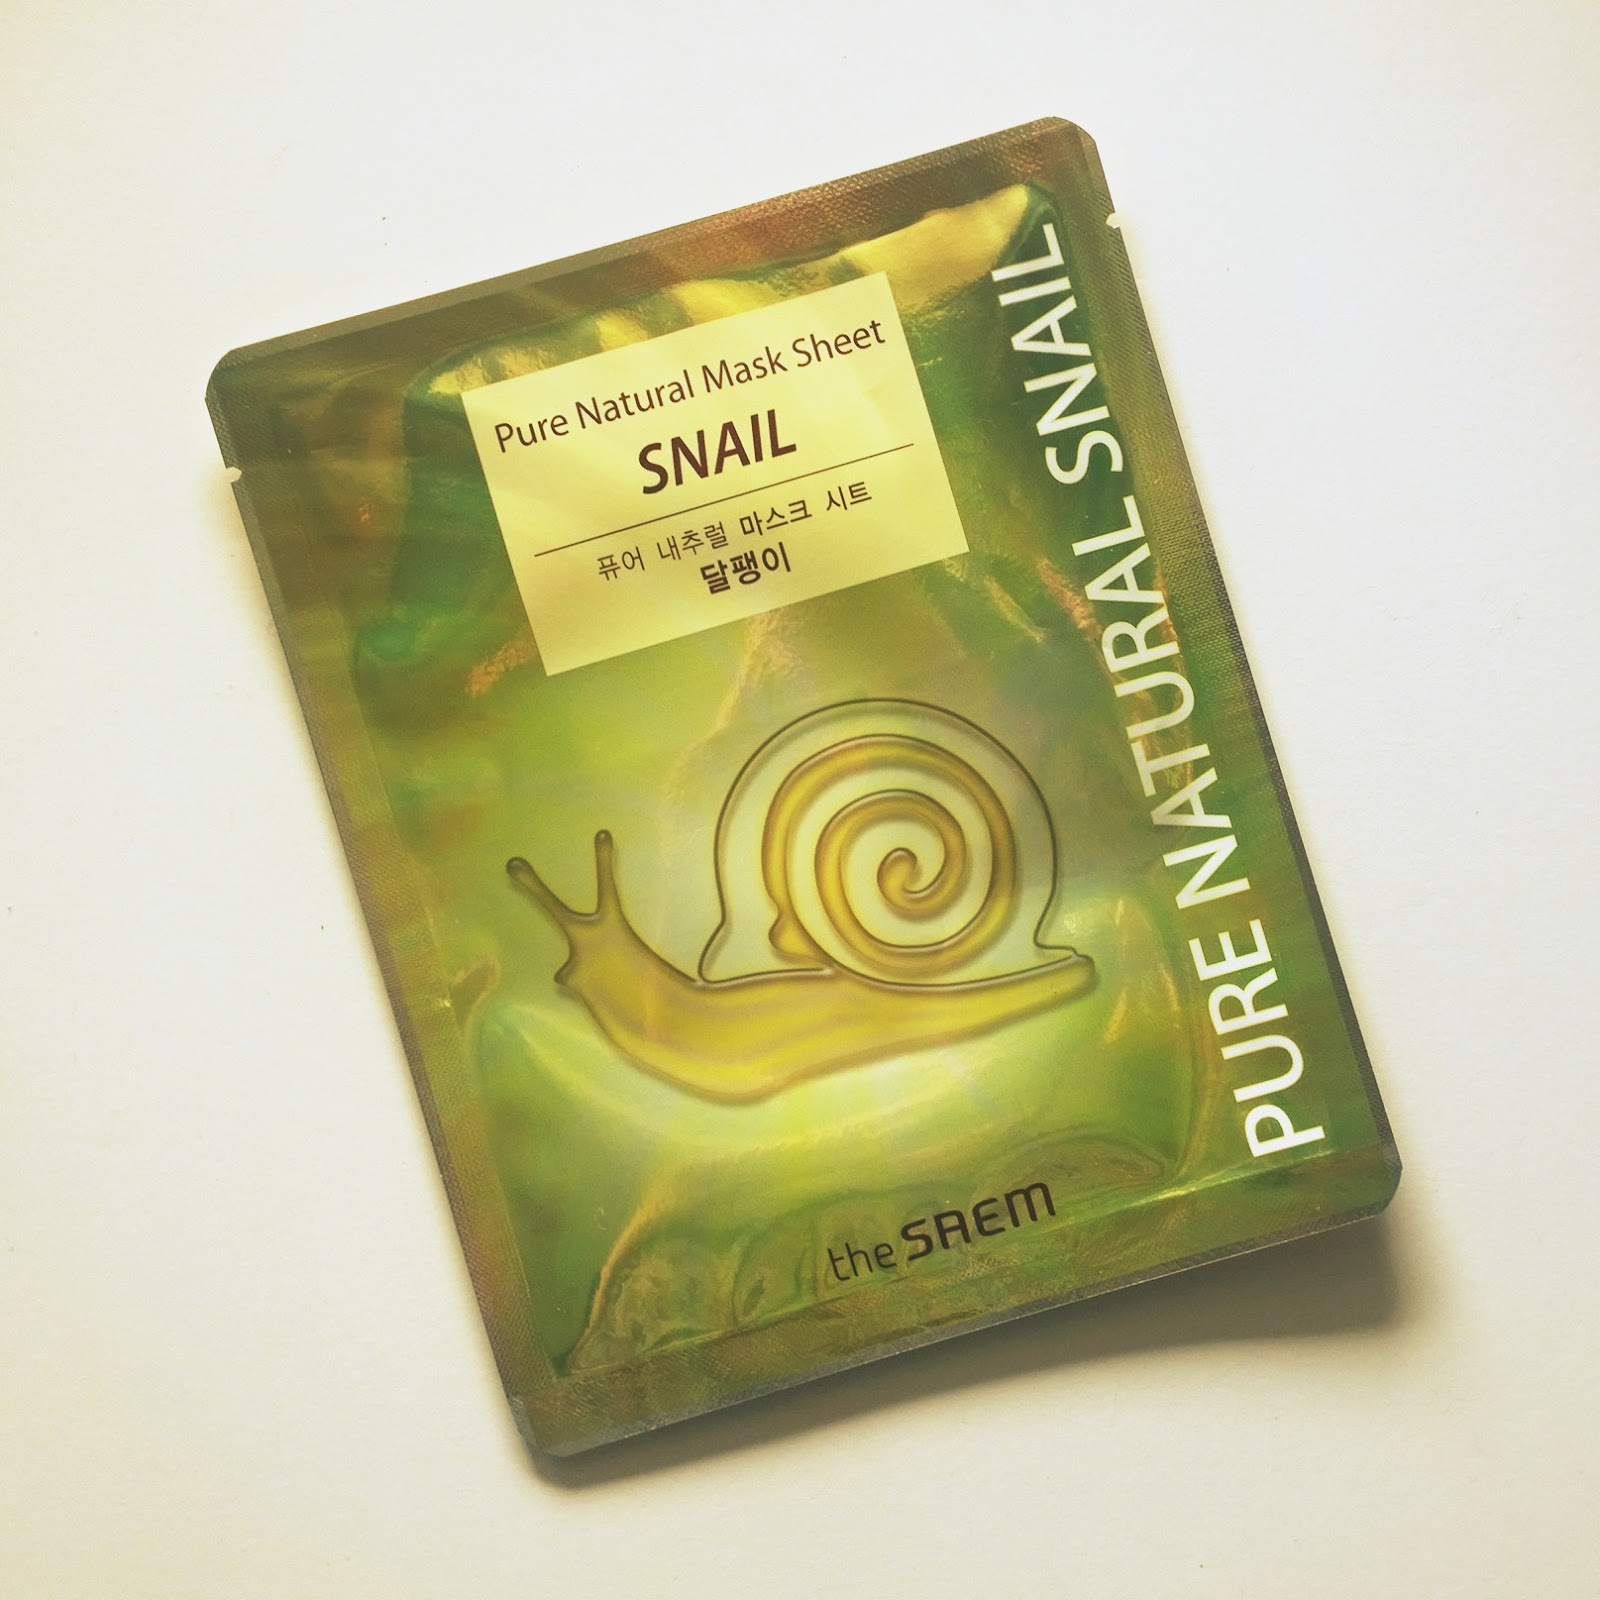 Ślimakowa maska! SAEM: Pure Natural Mask Sheet SNAIL